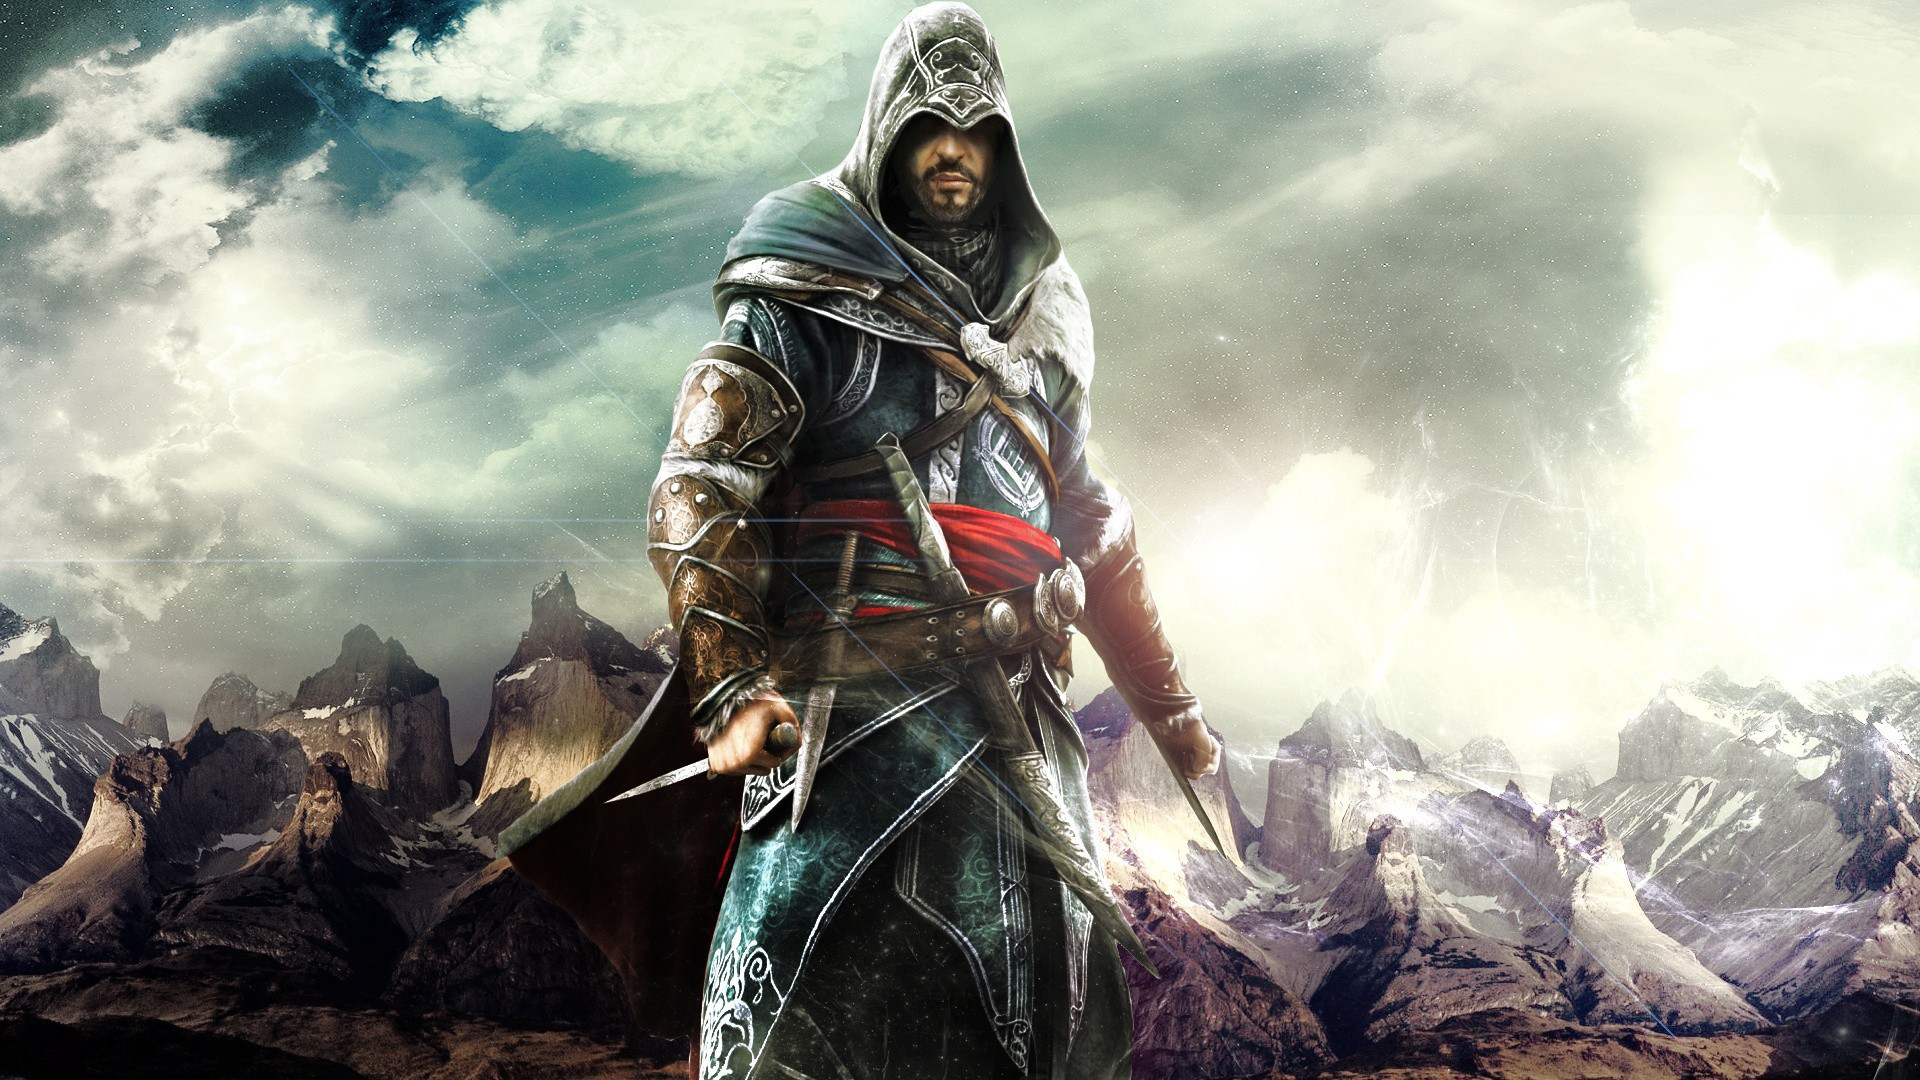 1920x1080 hd wallpaper Games Wallpapers For Mac Ezio The Best Assassin .